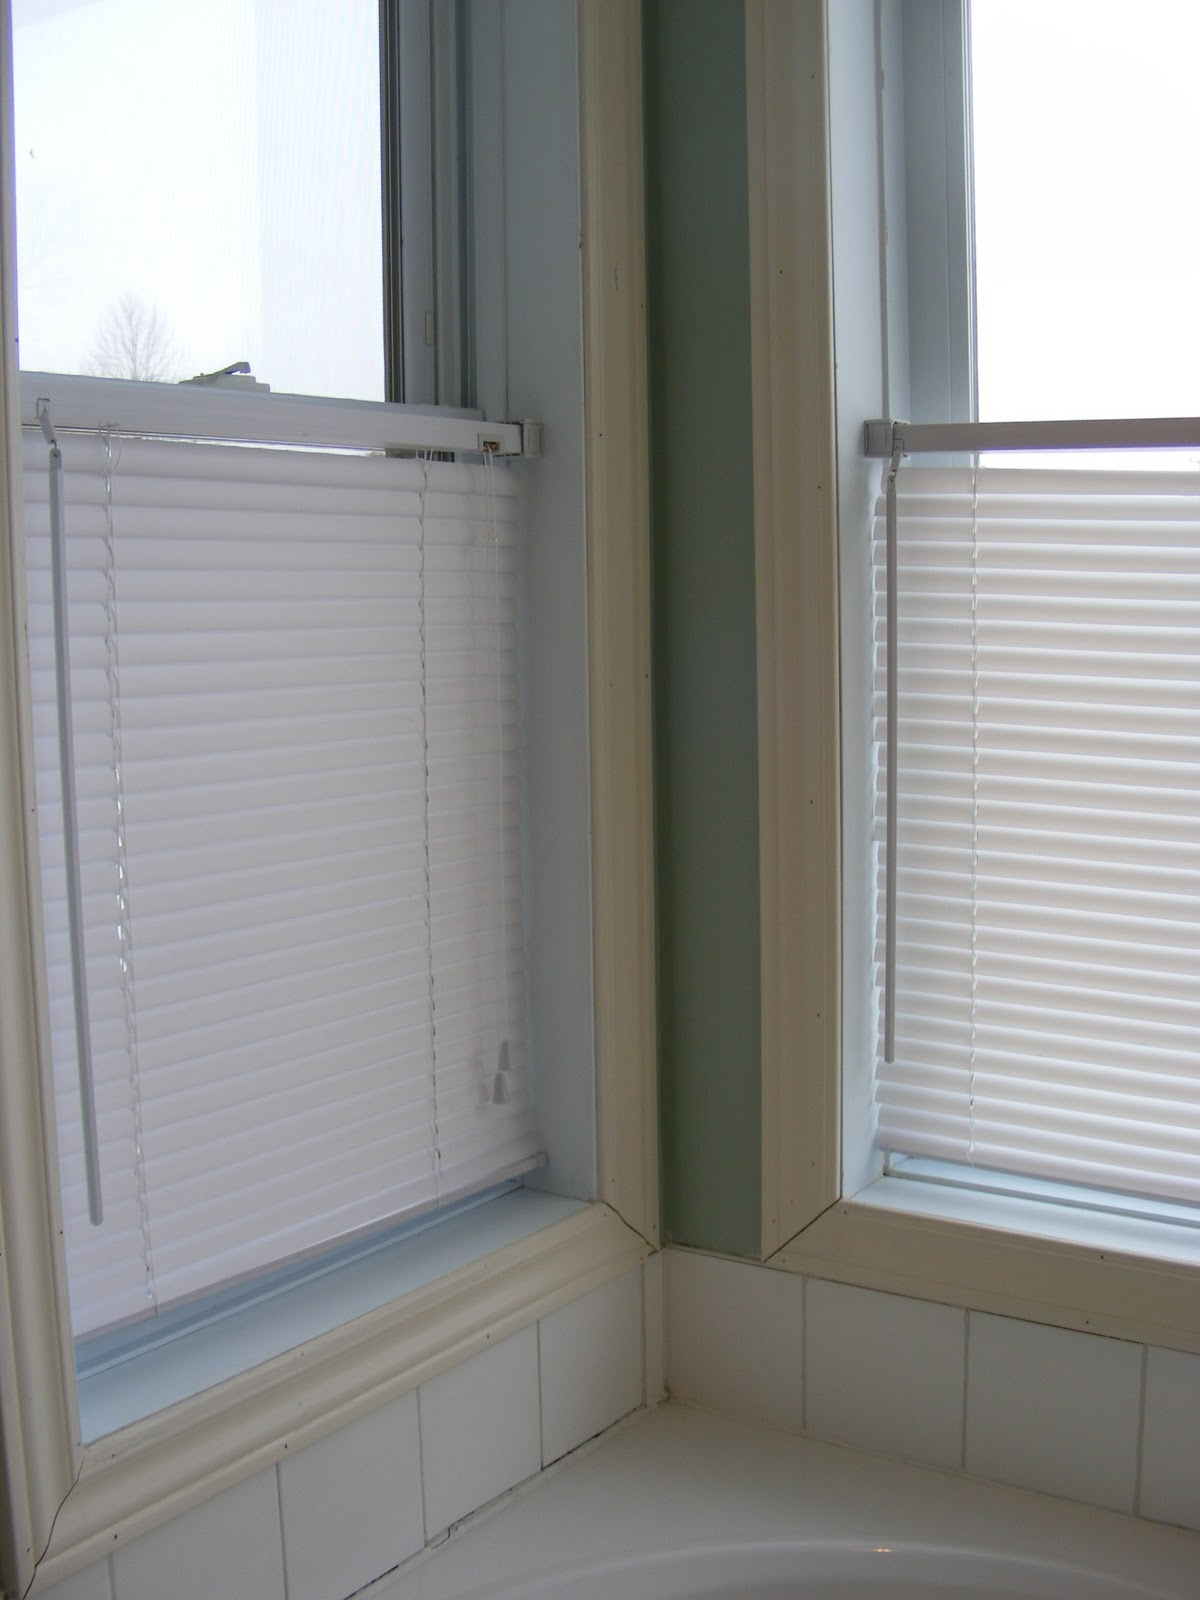 blinds lake by blind in cleaning crystal mueller now provided img interiors ultrasonic